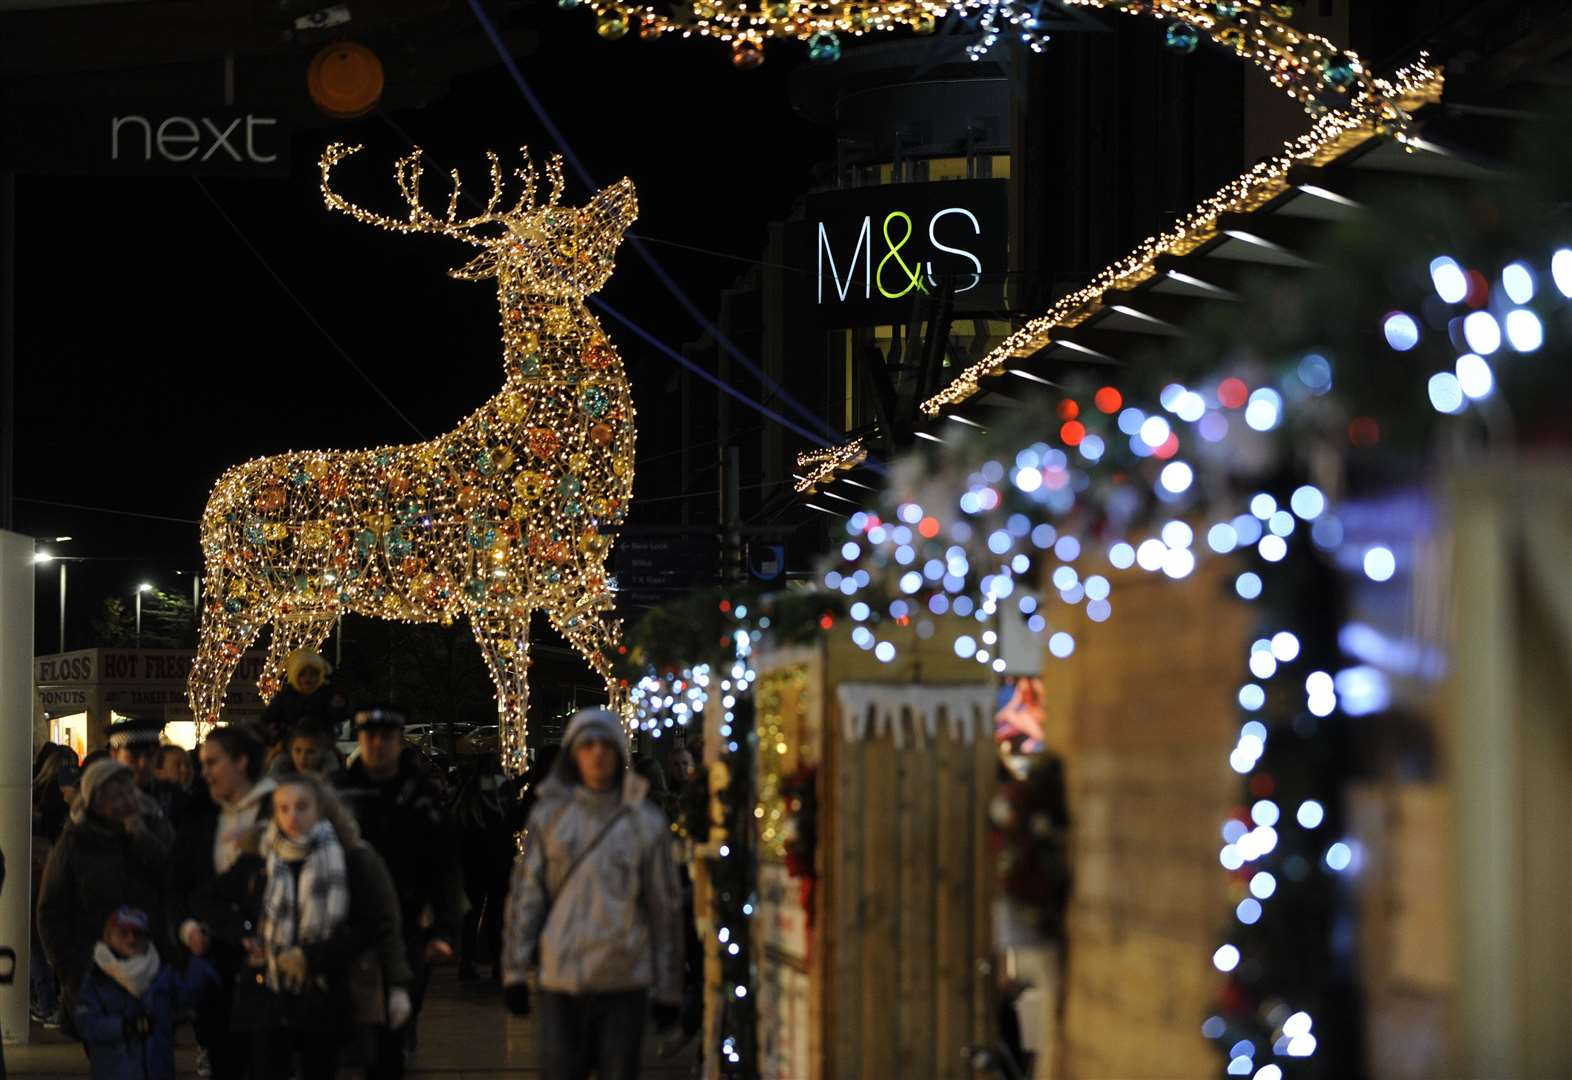 Popular shopping centre reveals Christmas opening hours